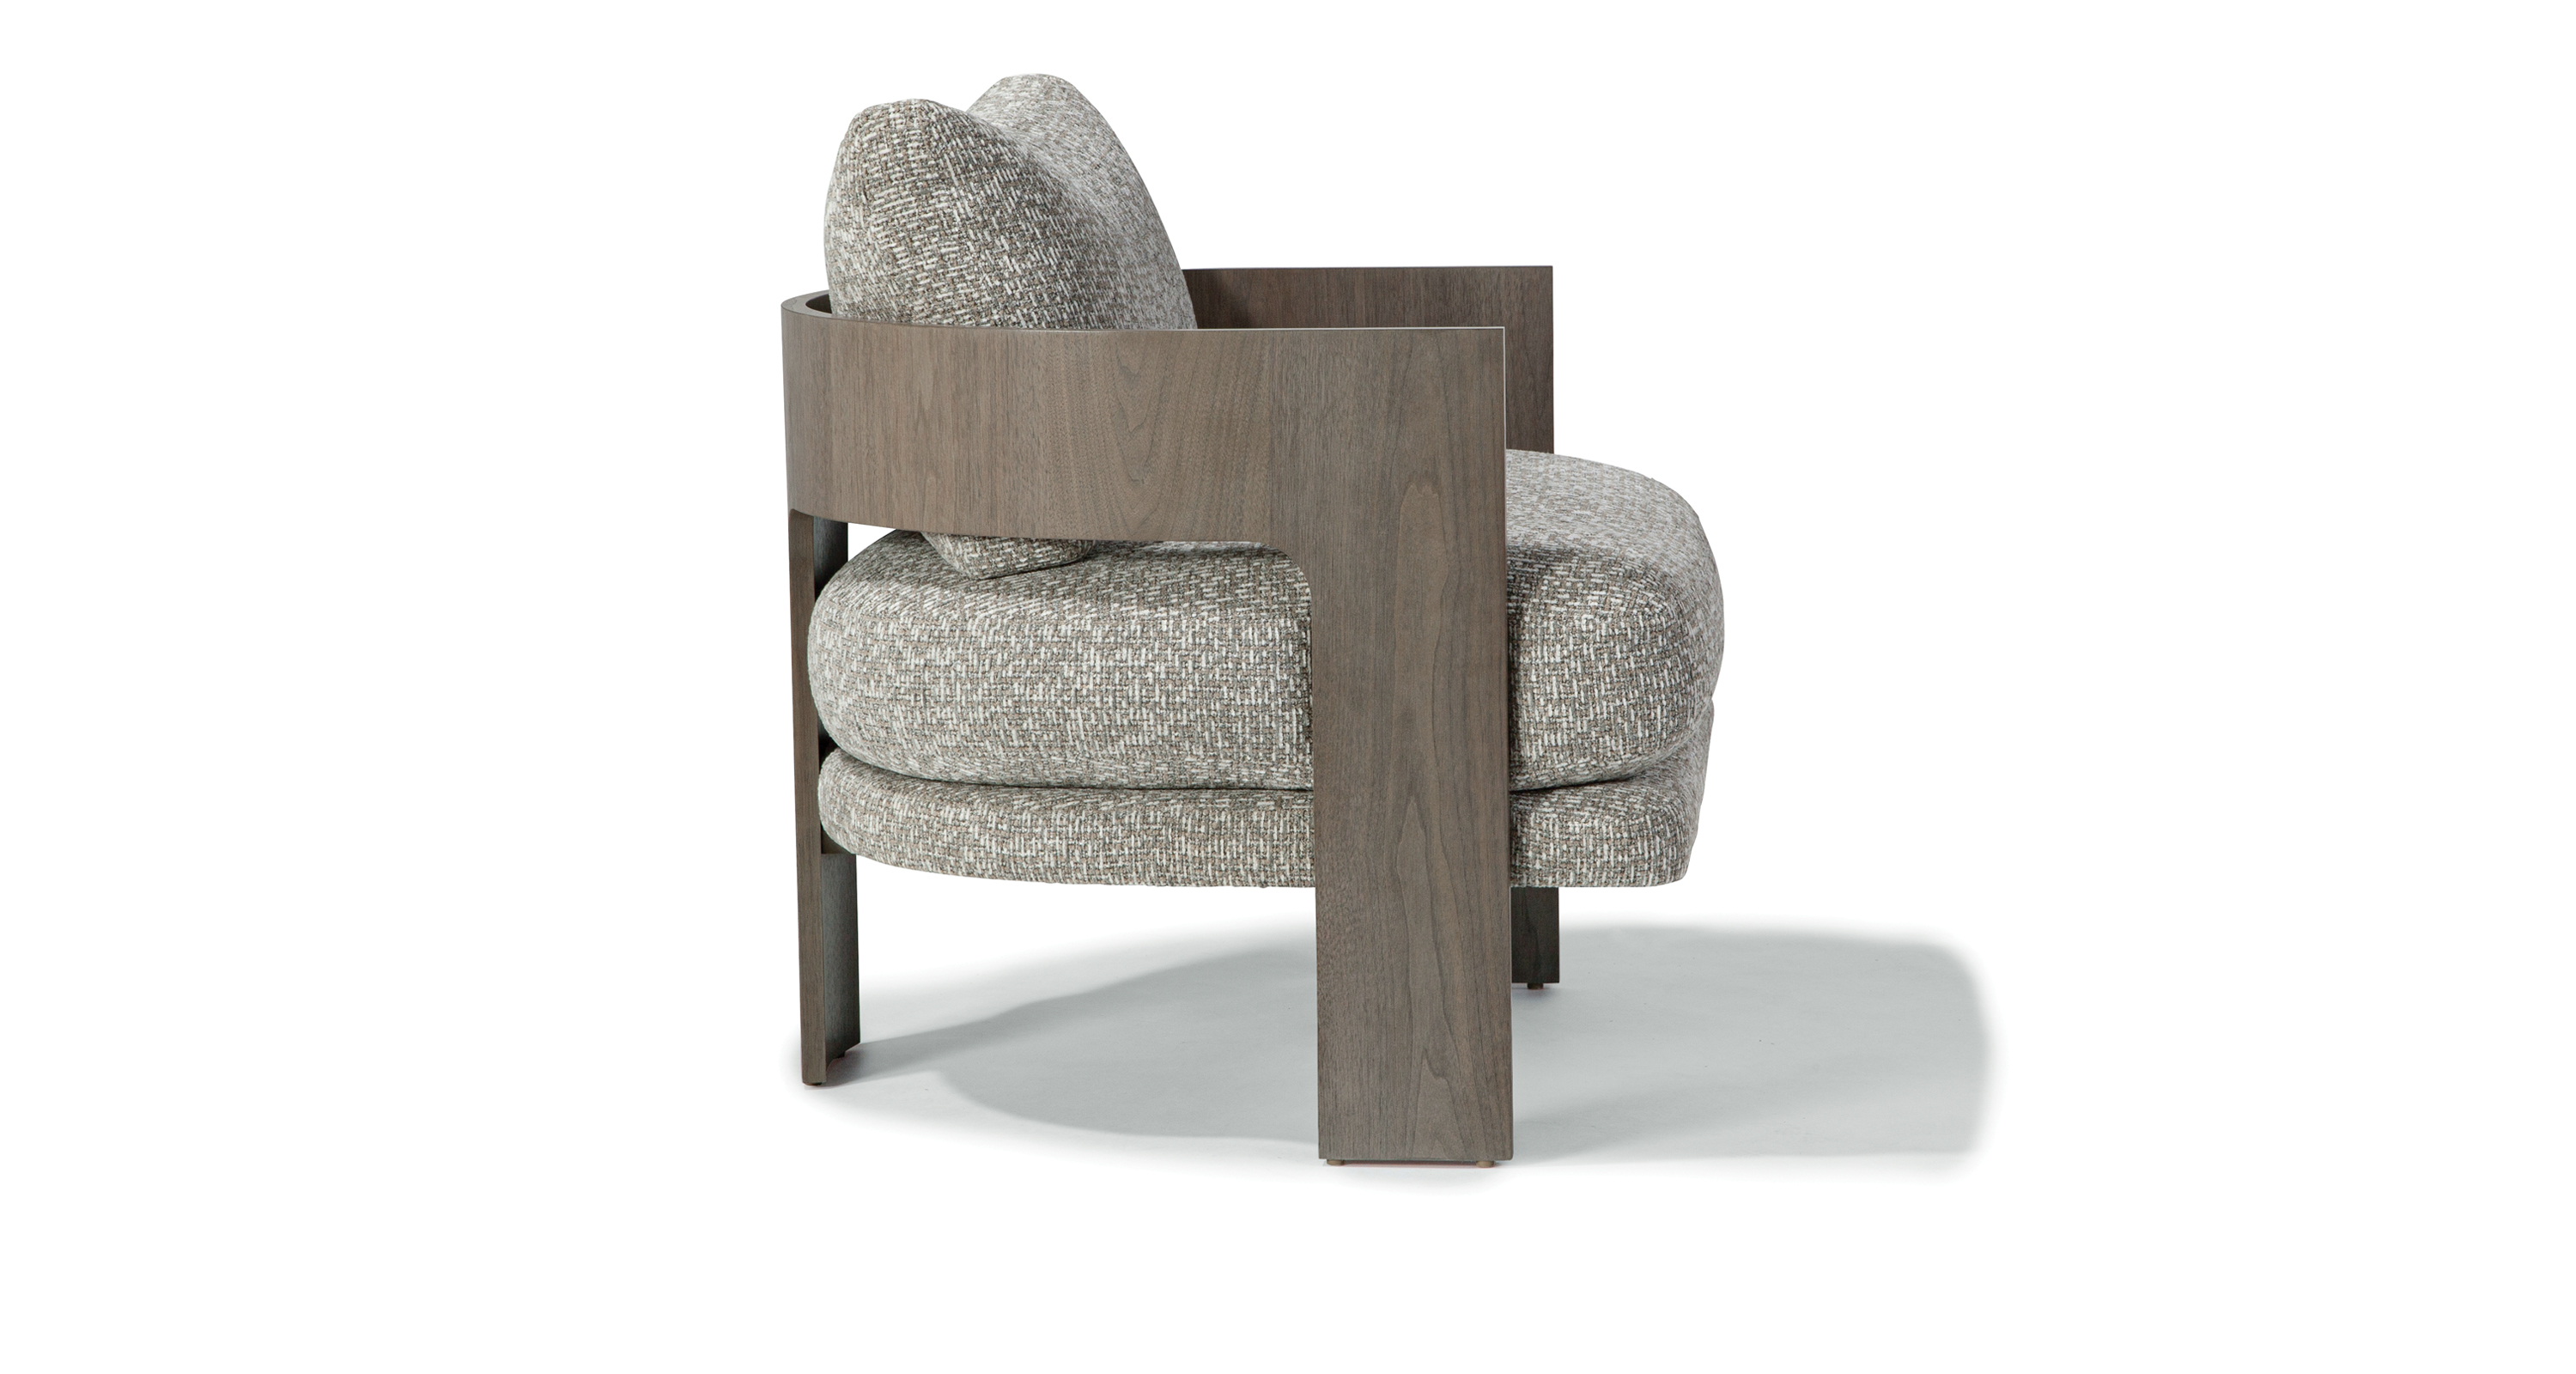 On 3 Lounge Chair